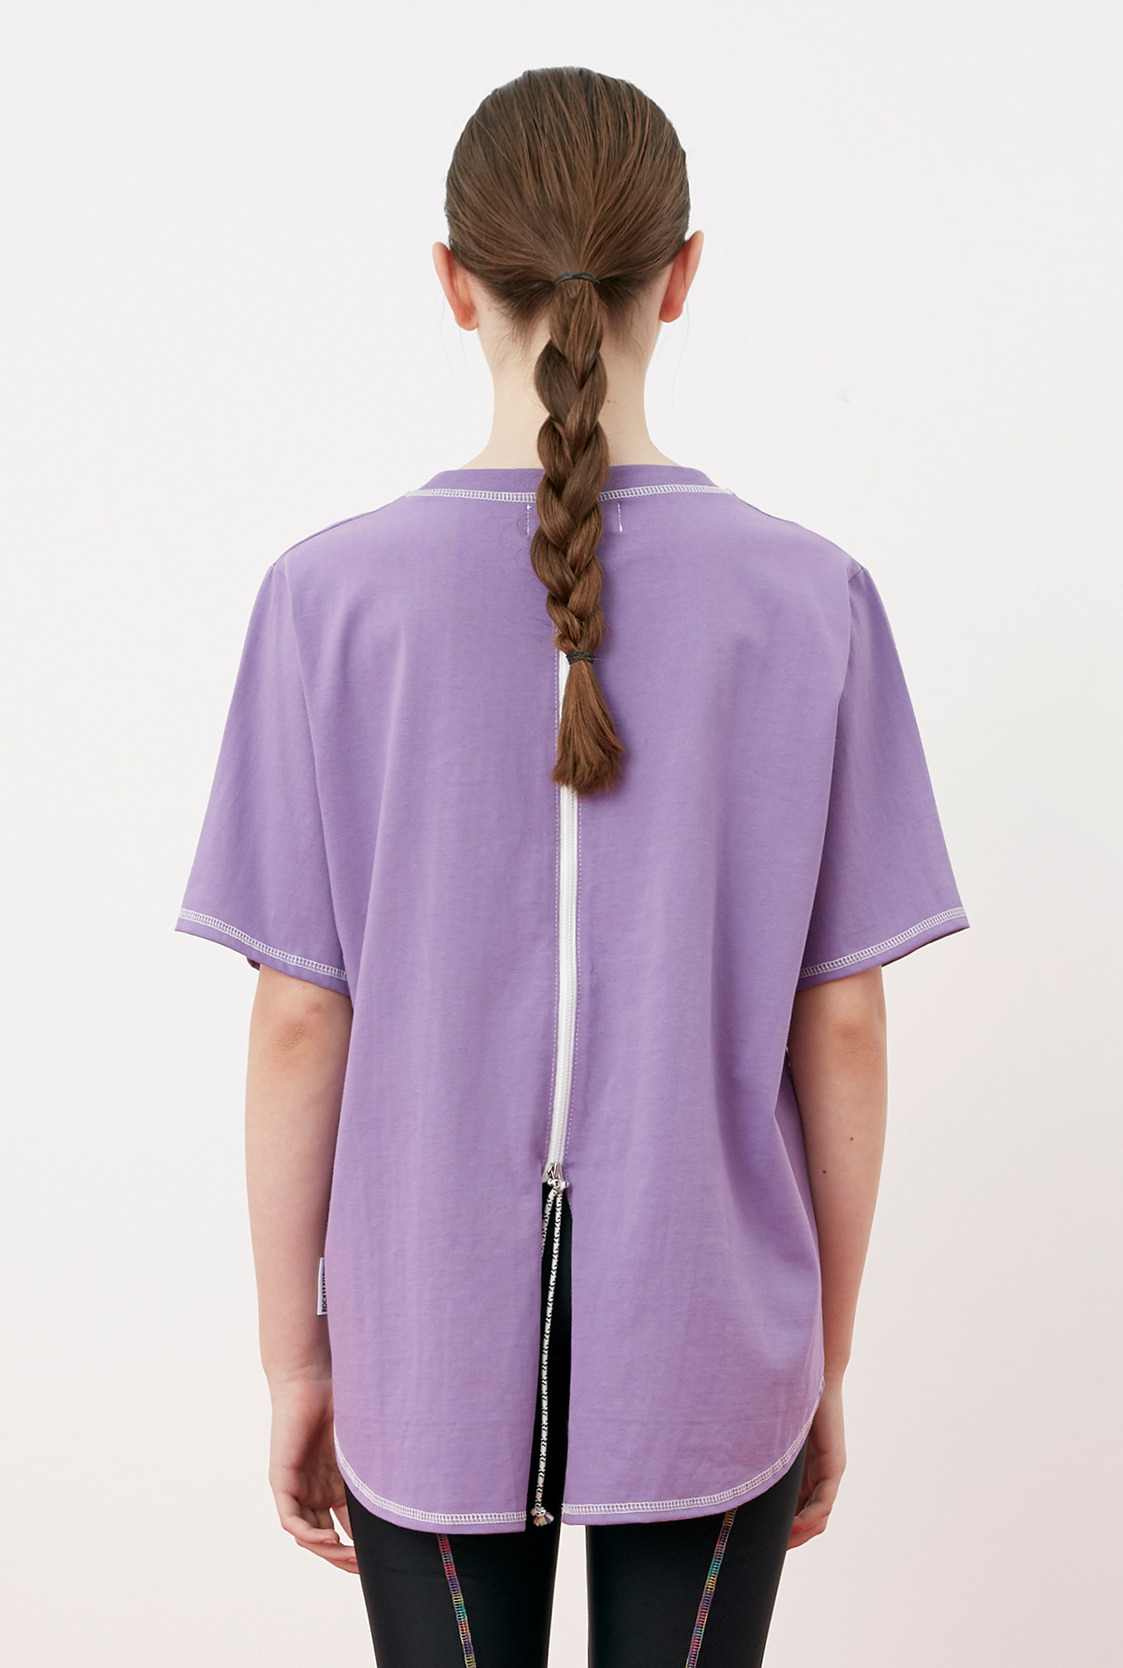 R BACK ZIPPER POINT T-SHIRT